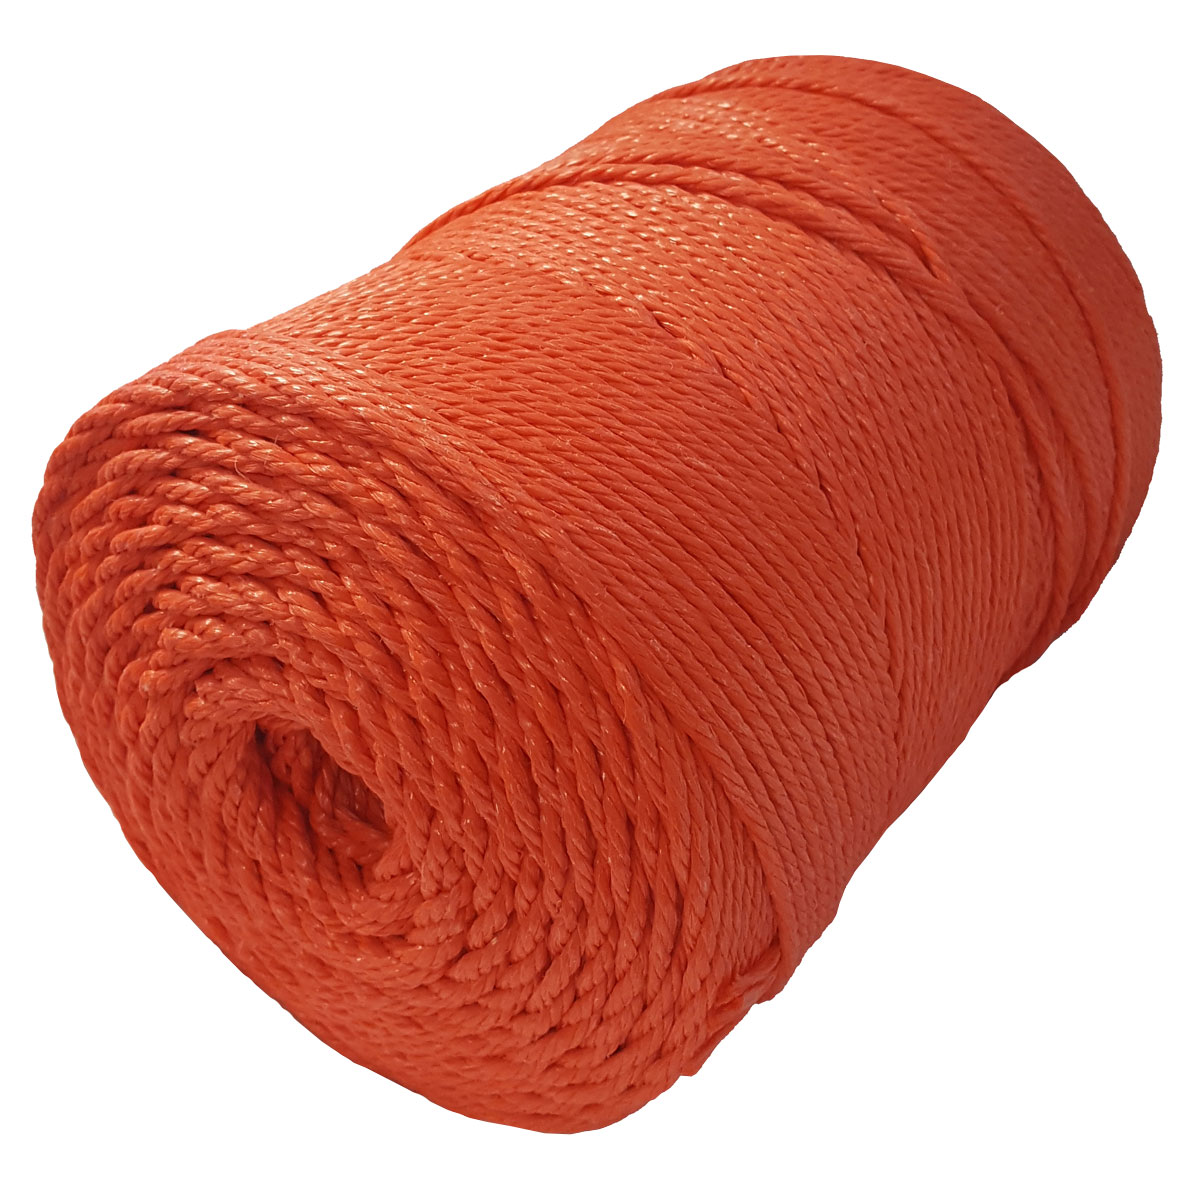 Centre feed roll of baler twine